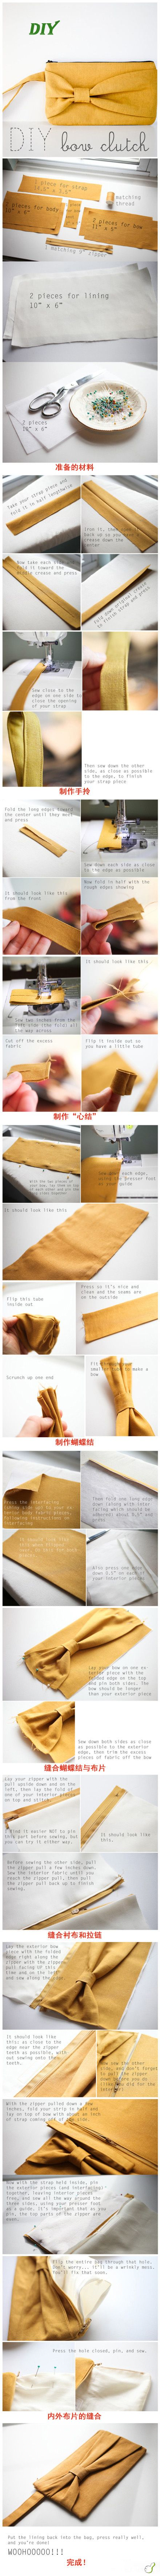 How to make a bow clutch